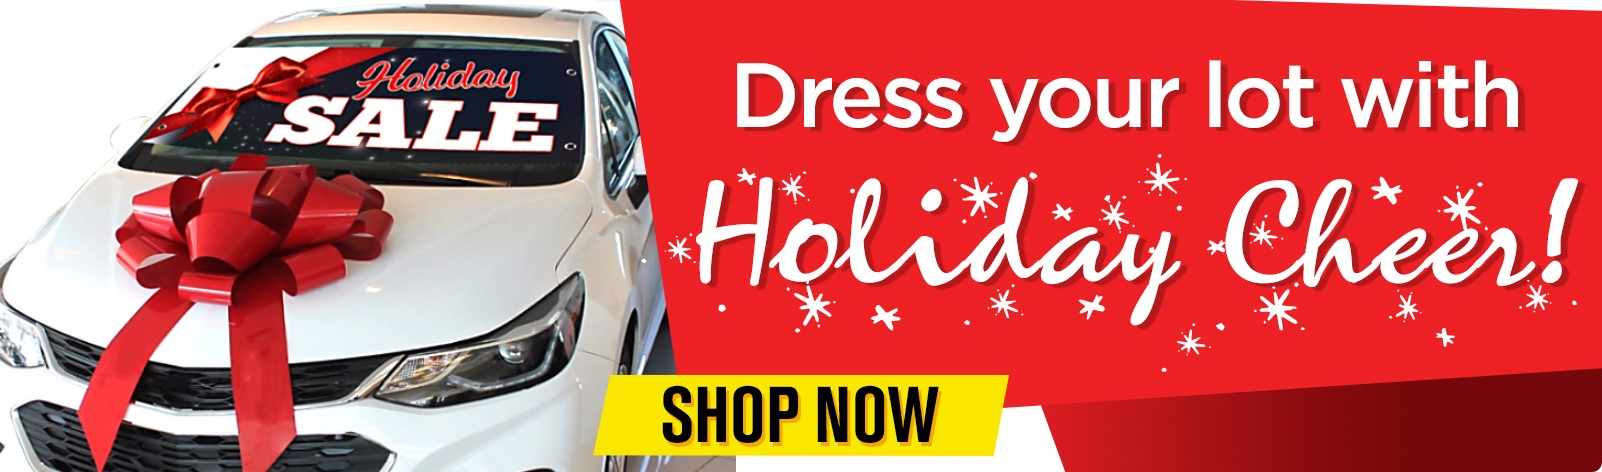 Dress your car dealership with holiday cheer!